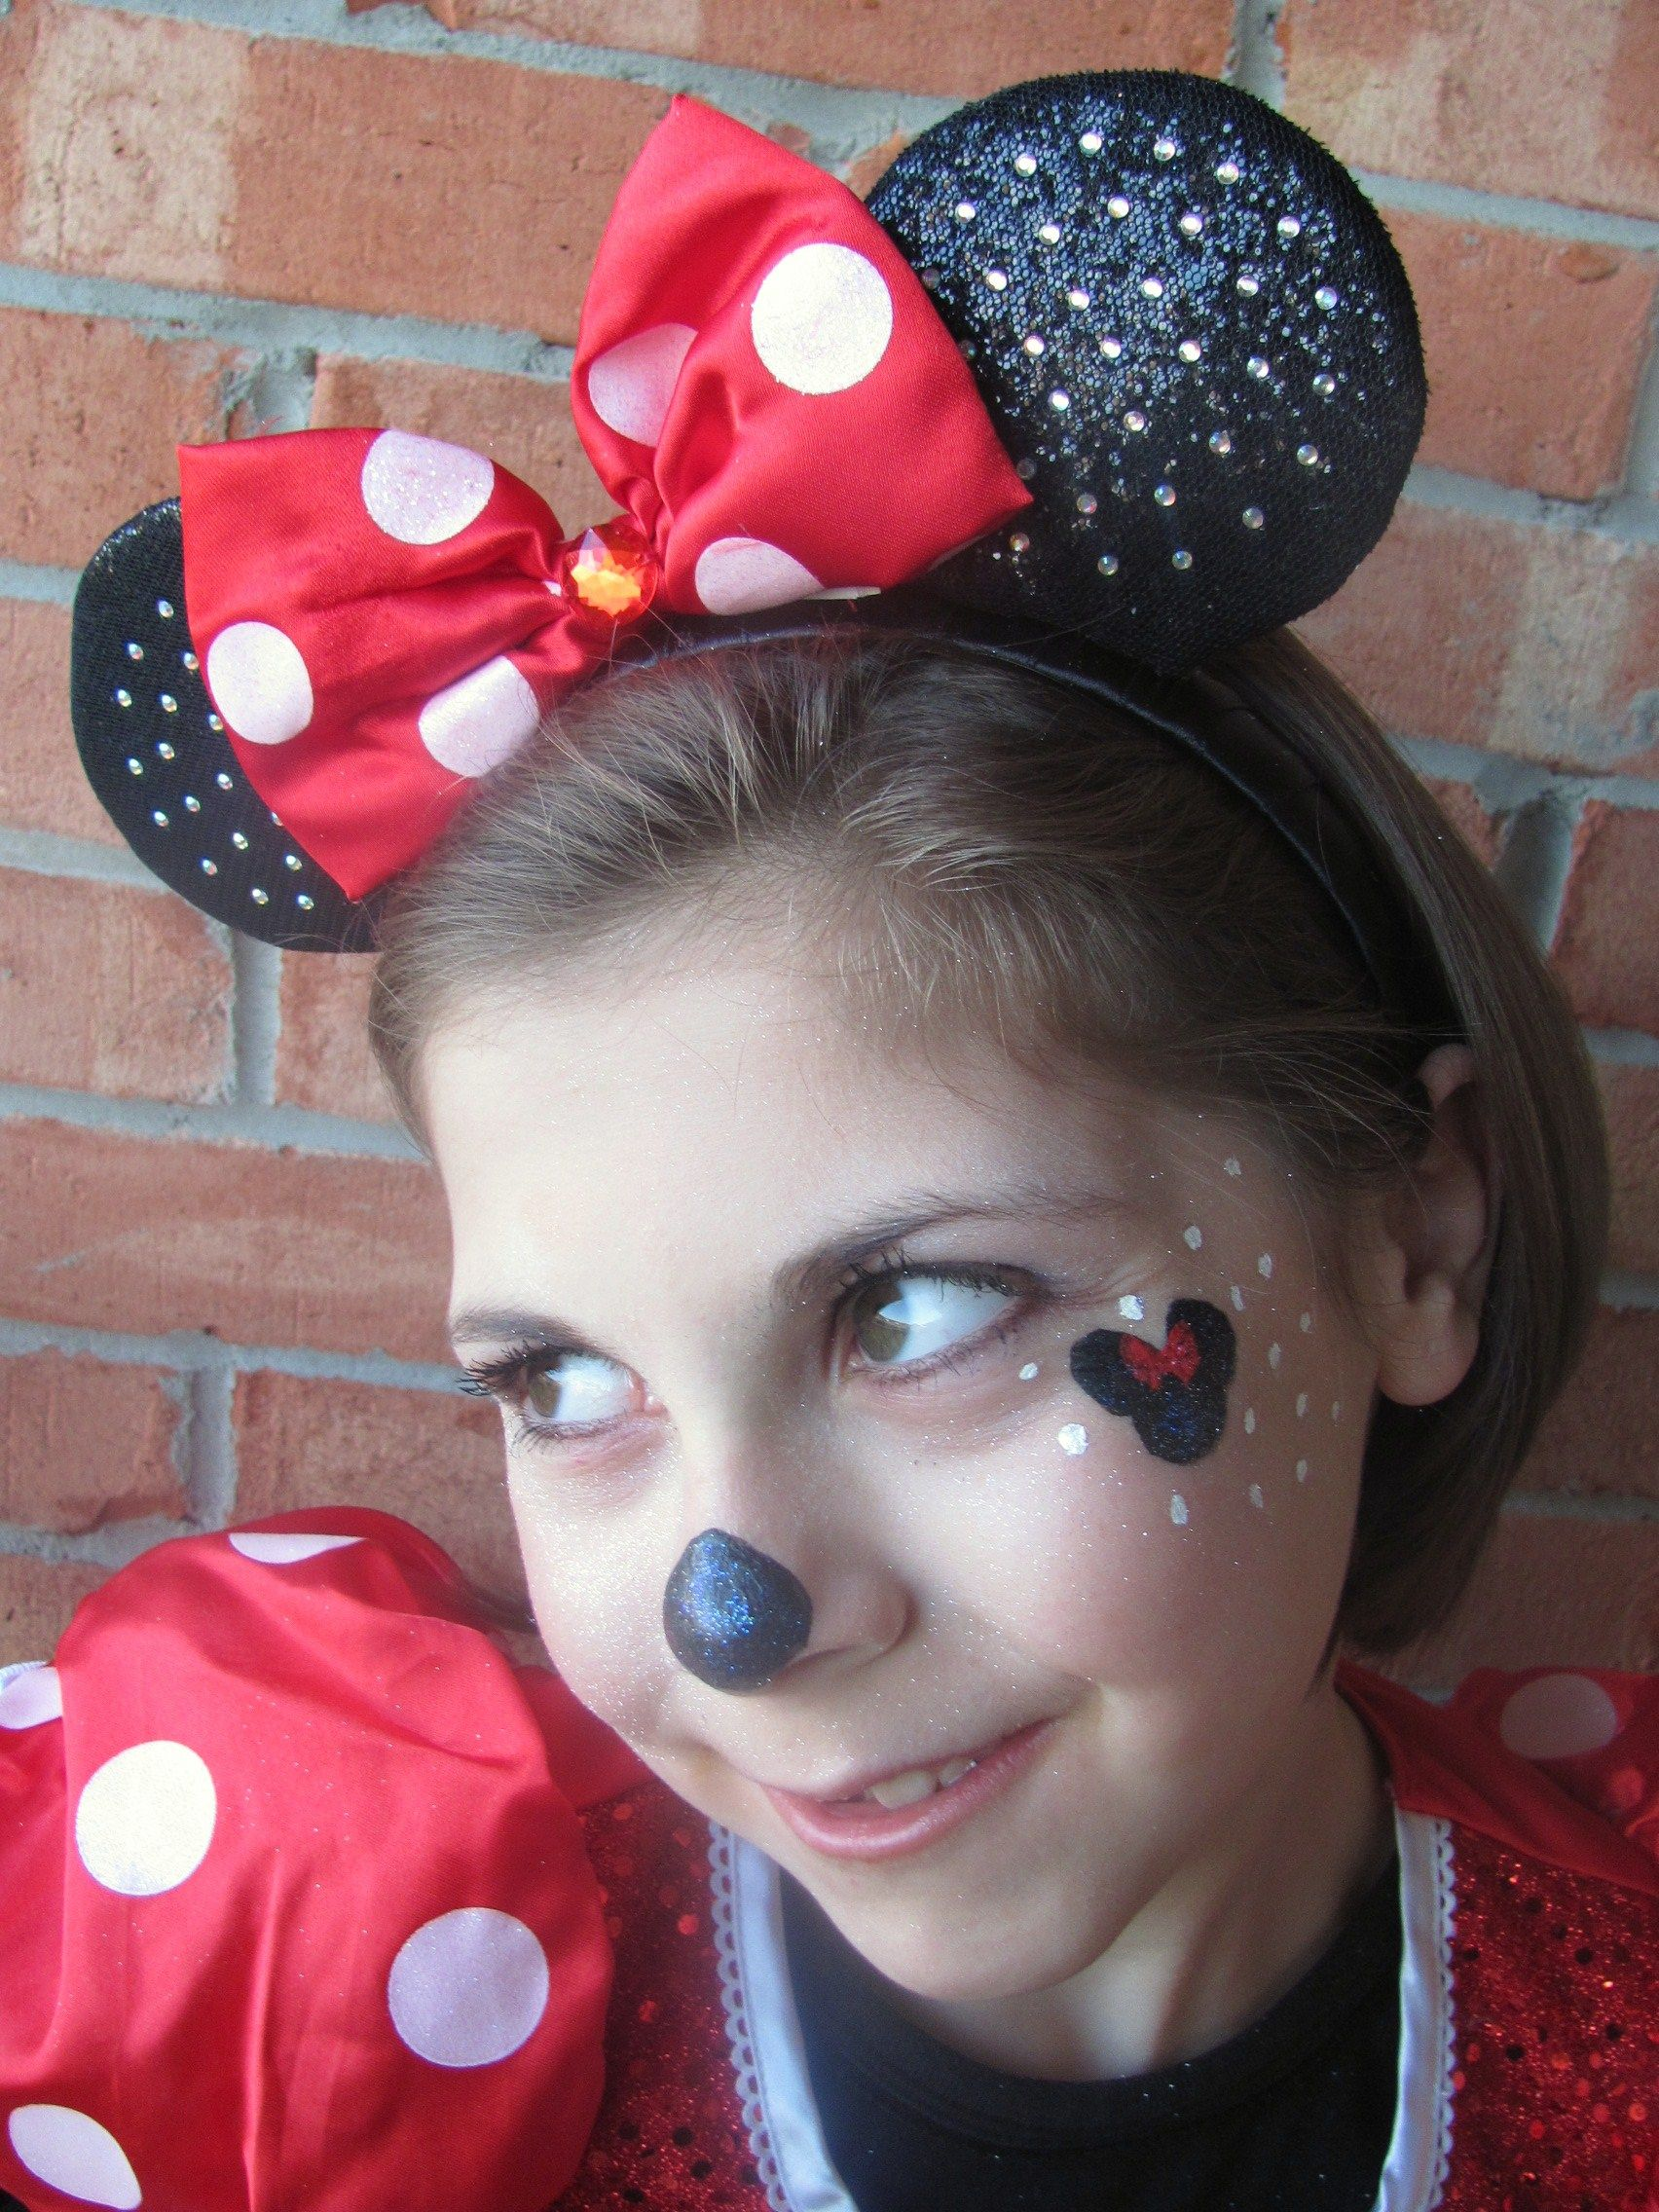 FOTD: Minnie Mouse Makeup Look For Halloween. Reapply your liquid eyeliner and make sure to fill in any gaps between your natural lashes and the fake lashes. Rim the lower waterline with MAC Fascinating Eye Kohl. Apply a pair of lower lashes like Makeup For Life Lashes in .